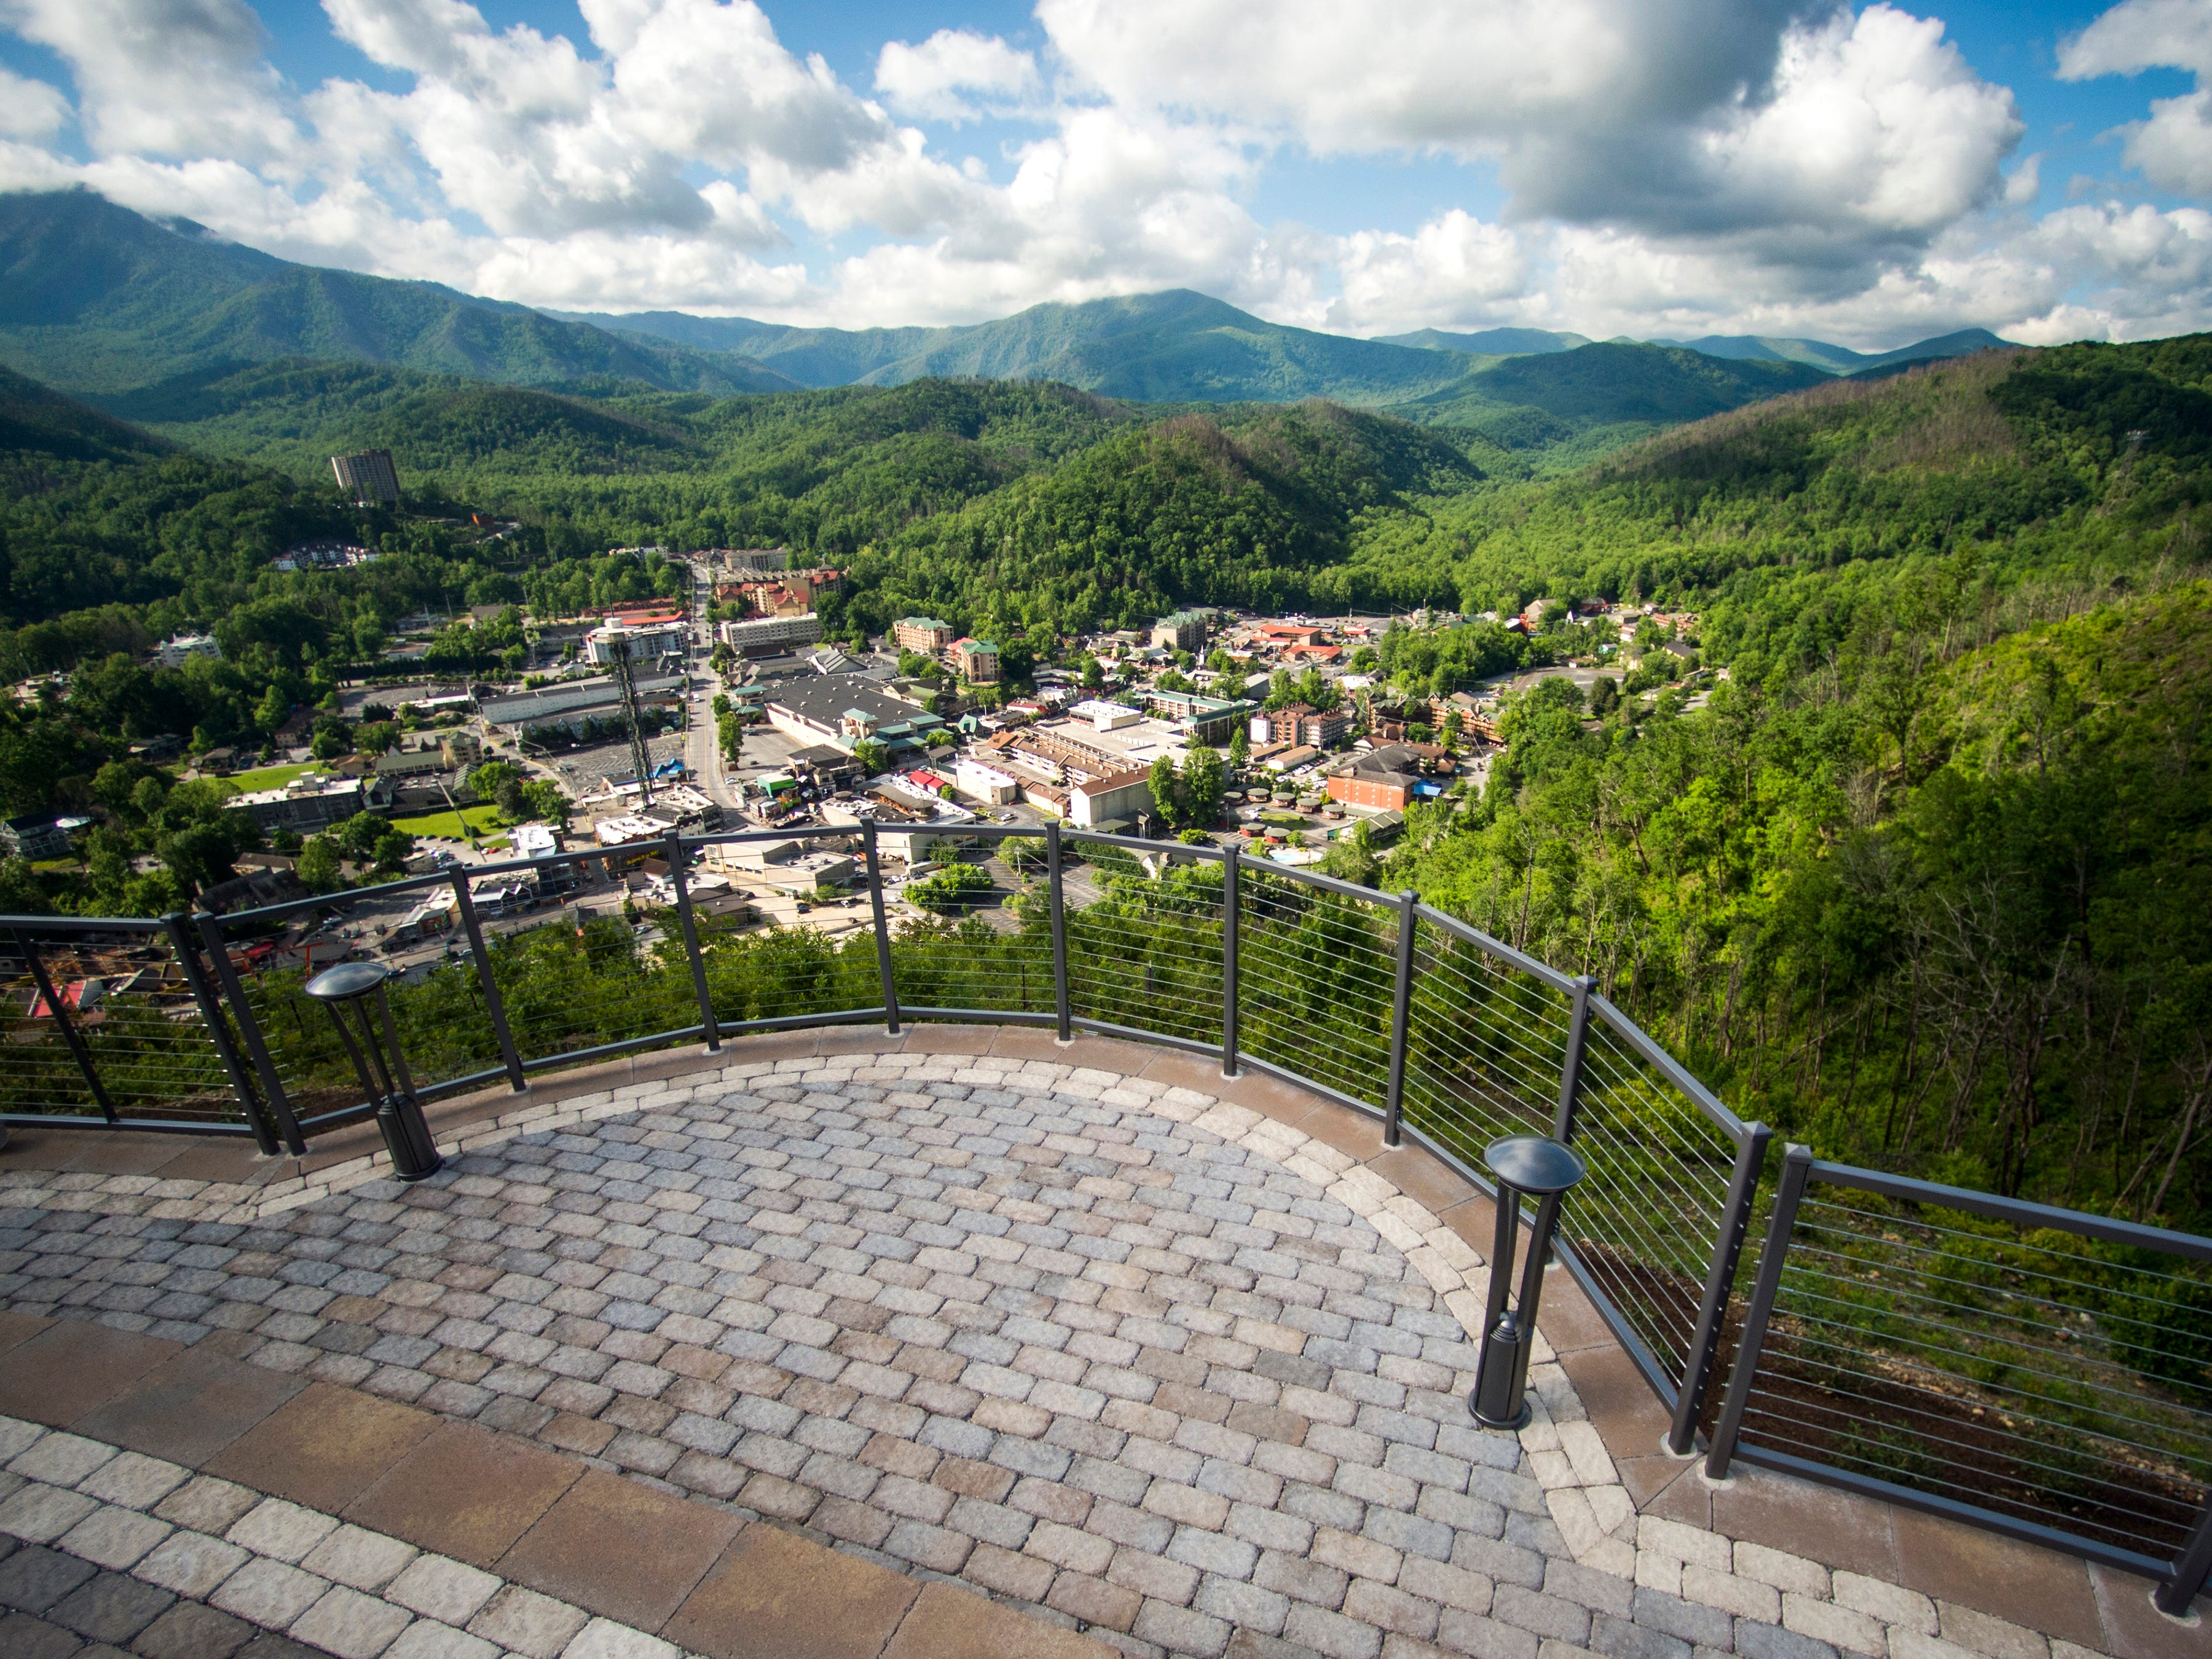 A viewing area at the Gatlinburg SkyLift Park, pictured on Tuesday, May 14, 2019, offers panoramic views of Gatlinburg and the Smoky Mountains as well as a viewing spot to watch people on the SkyBridge.